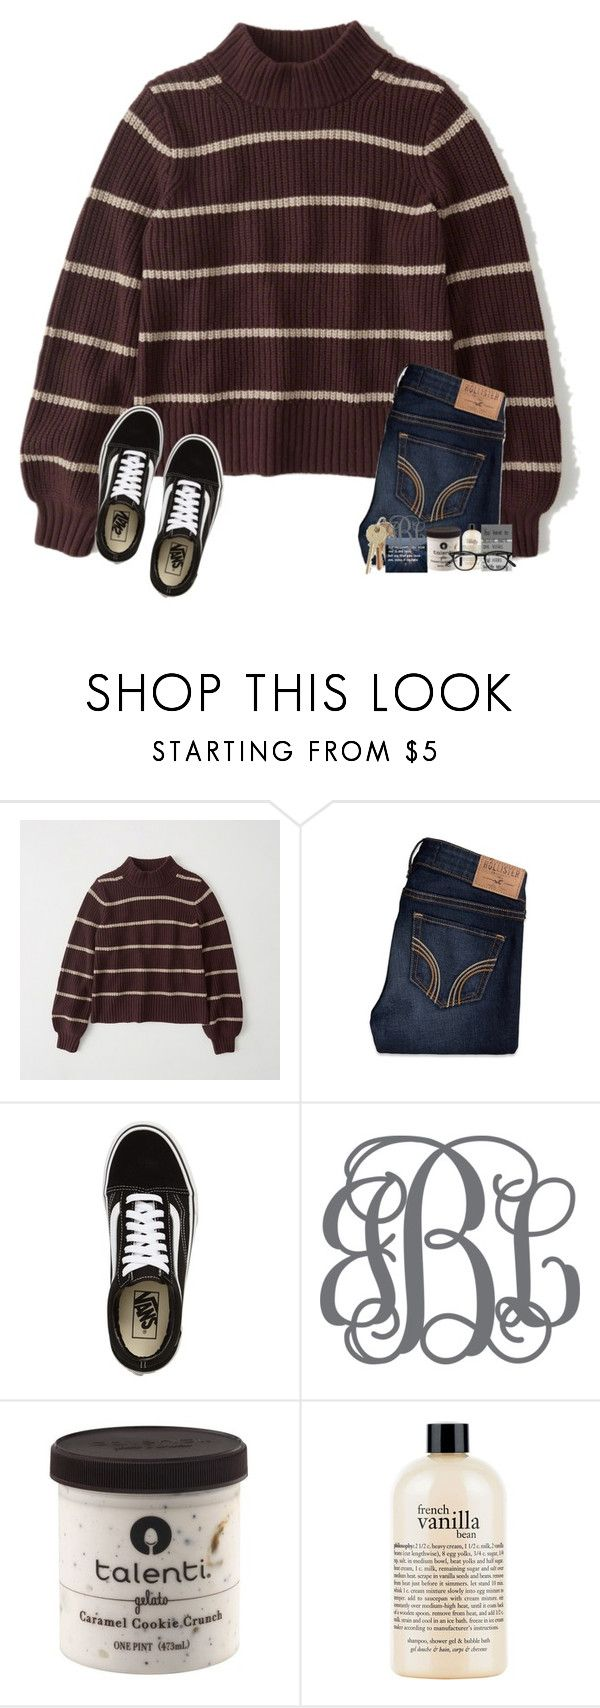 """""""how was everyone's day?"""" by amararangwala ❤ liked on Polyvore featuring Abercrombie & Fitch, Hollister Co., Vans, philosophy and Garrett Leight"""